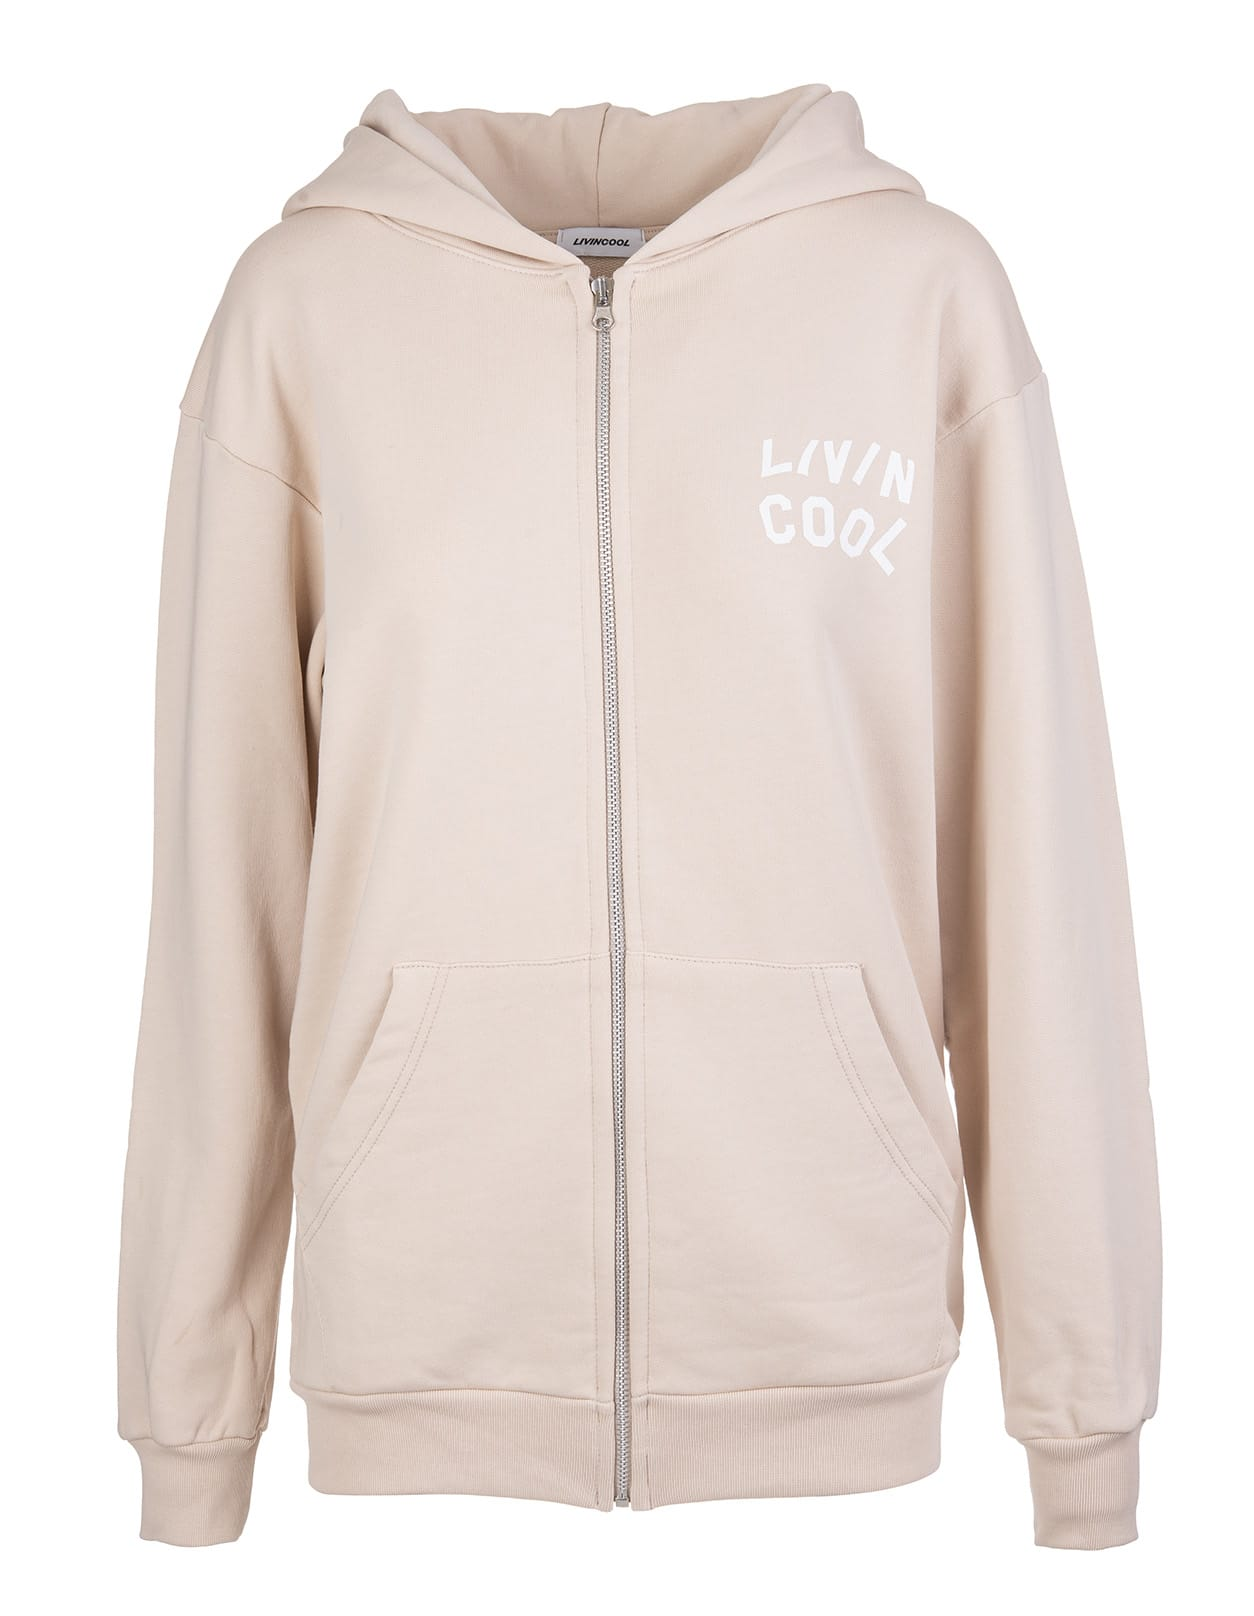 Woman Beige Hoodie With Zip And Logo Printed Front And Back